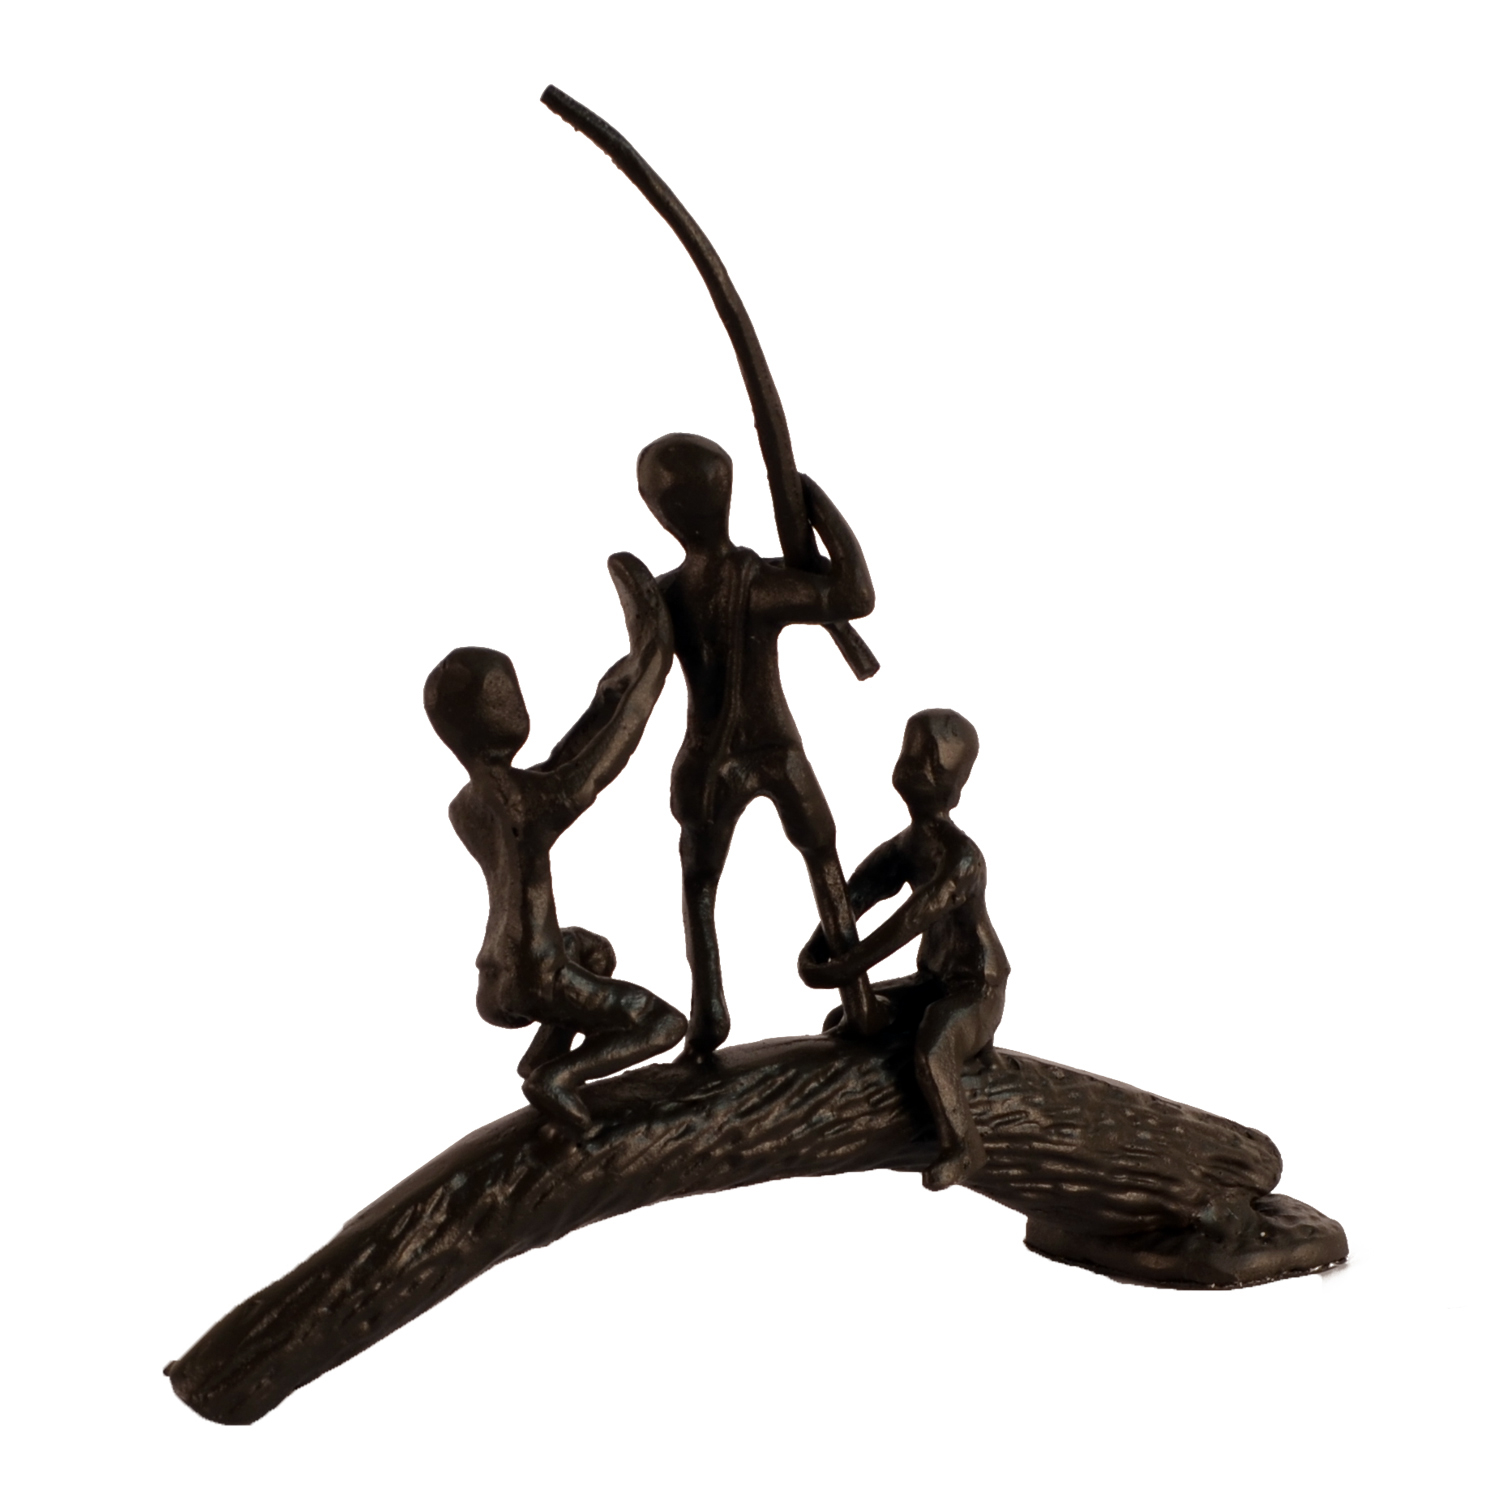 Elur Boys On Log Iron Statue Figurine 19cm in Mocha Brown - Ruby's Garden Boutique